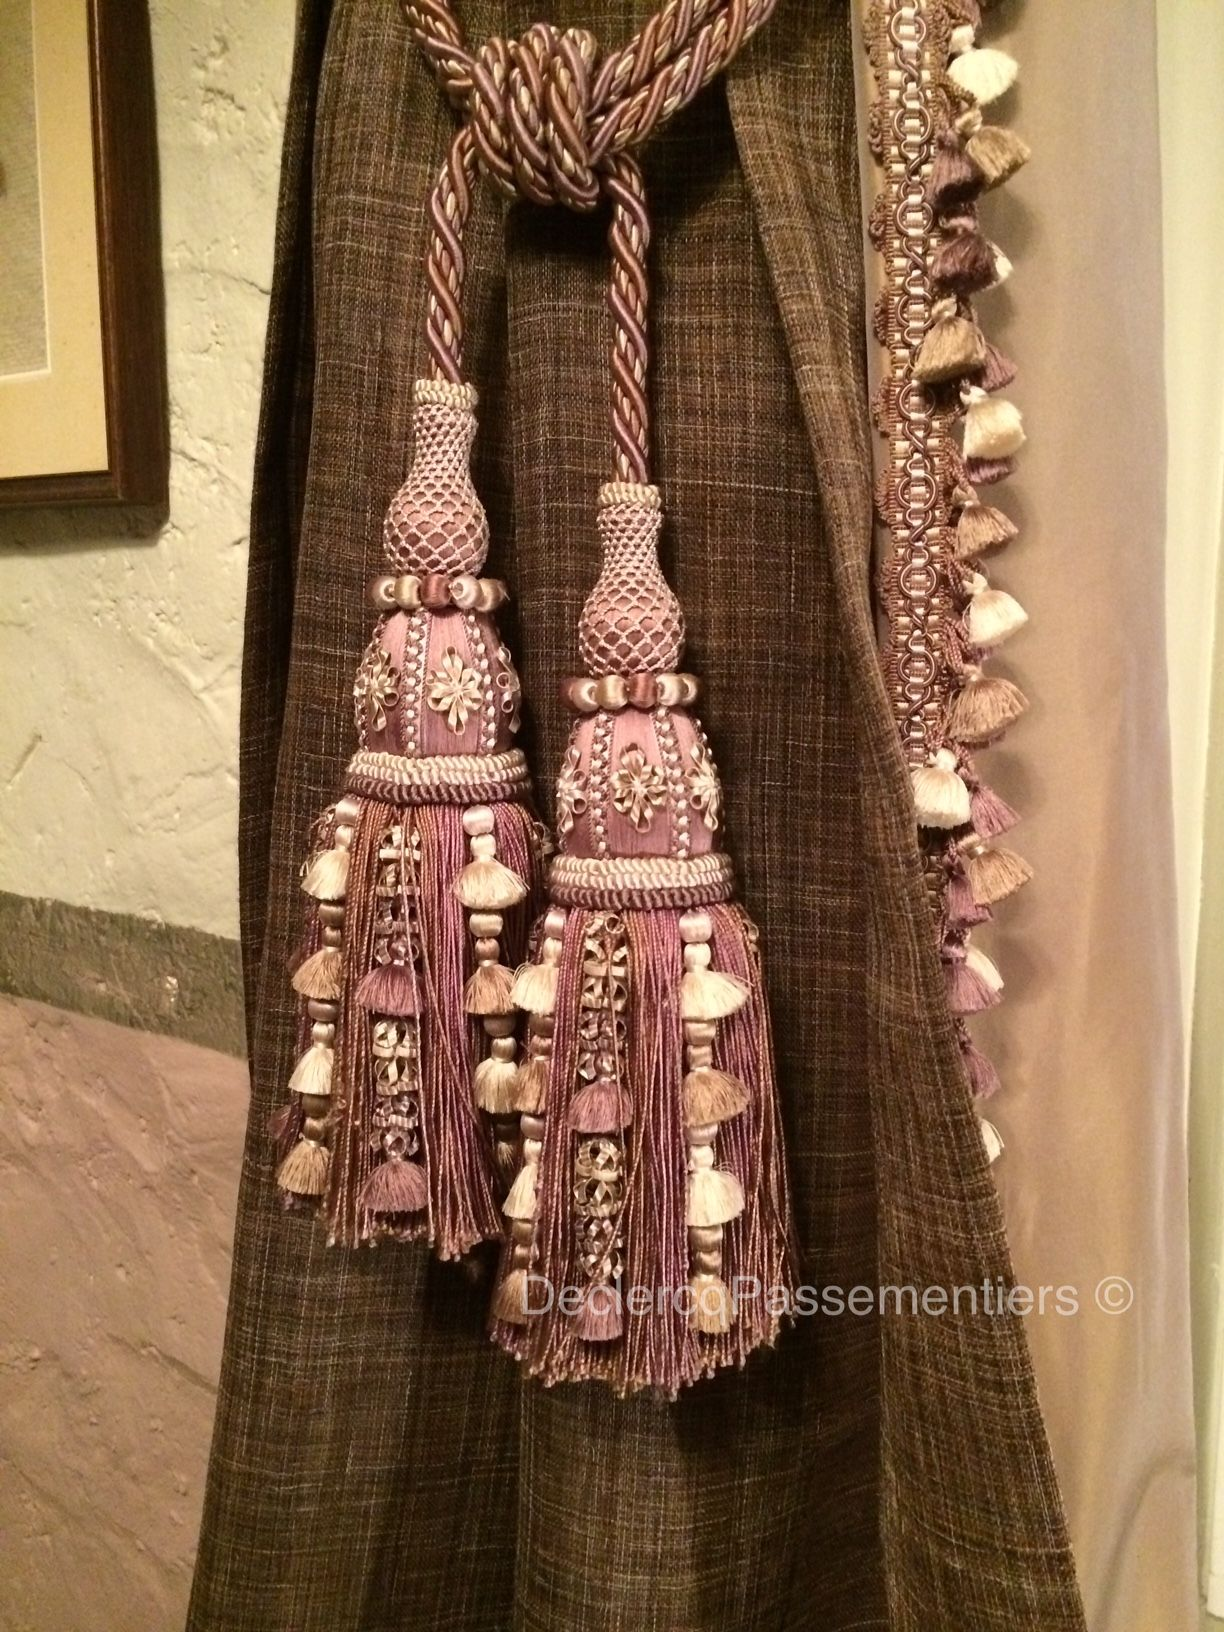 Embrasses A Jasmins Tanit Soie Declercq Passementiers Passementerie Trimmings Beaded Necklace Beaded Tassels